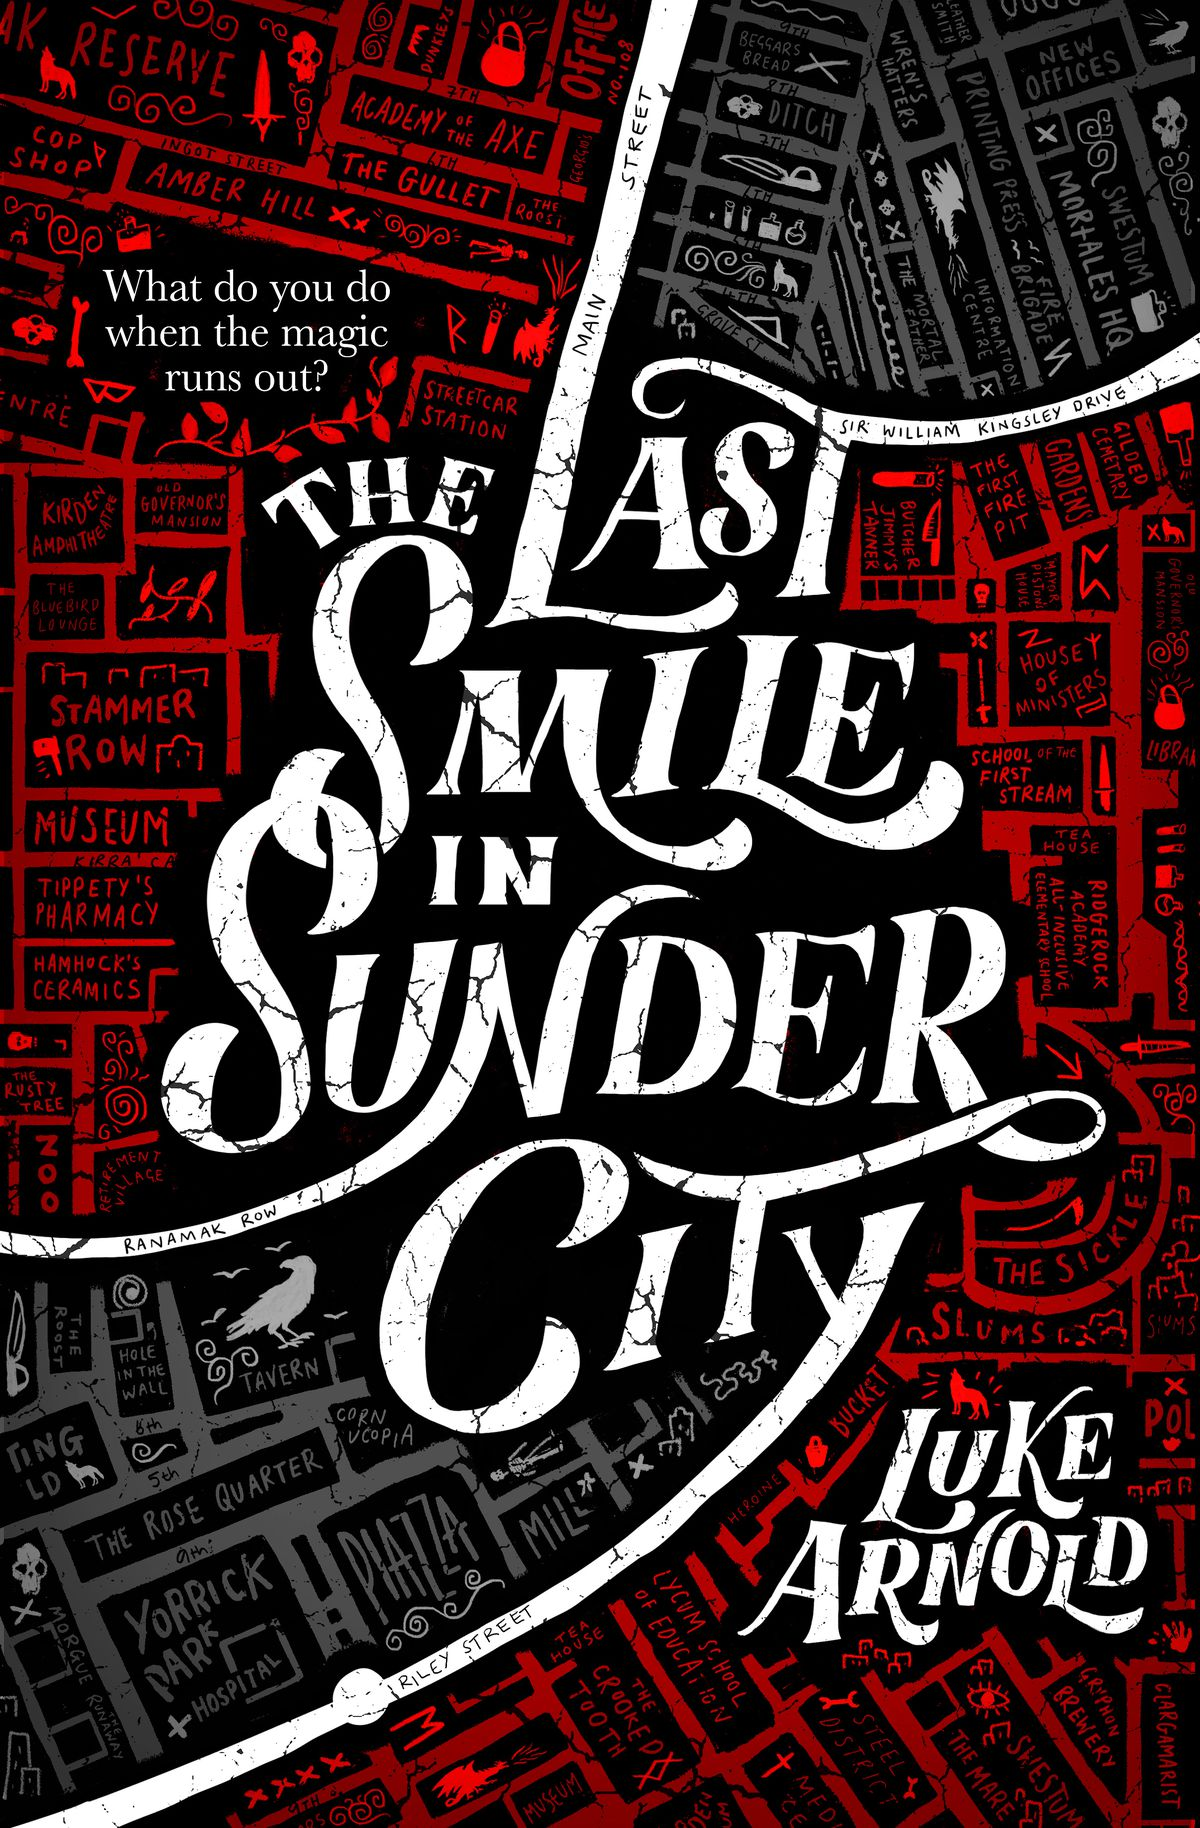 A map of the city on the cover of The Last Smile in Sunder City by Luke Arnold